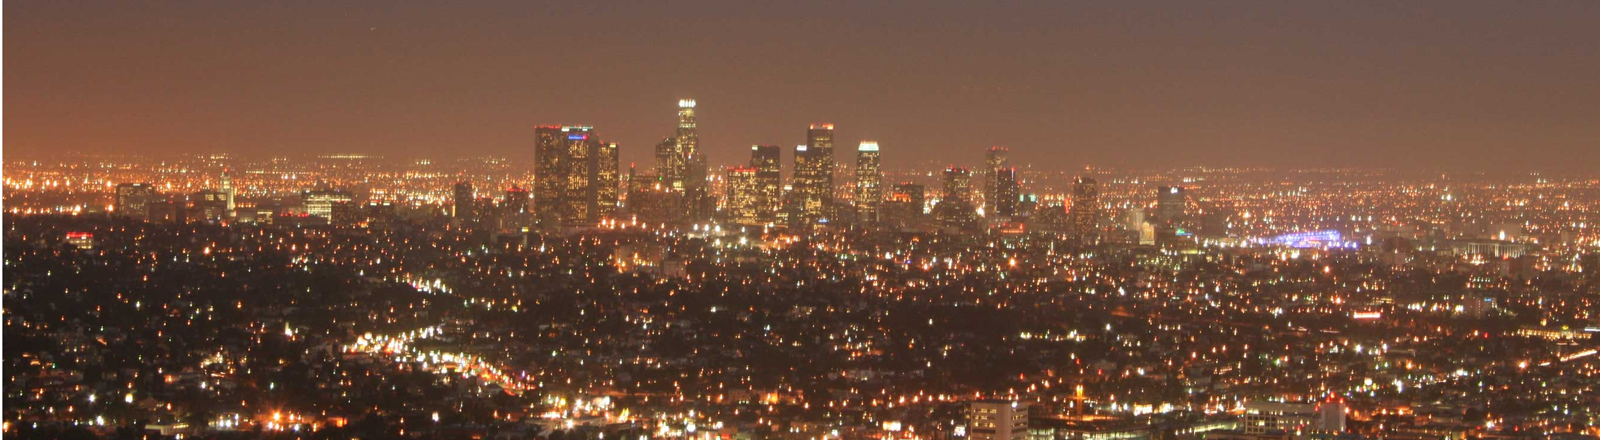 Los Angeles in der Nacht.